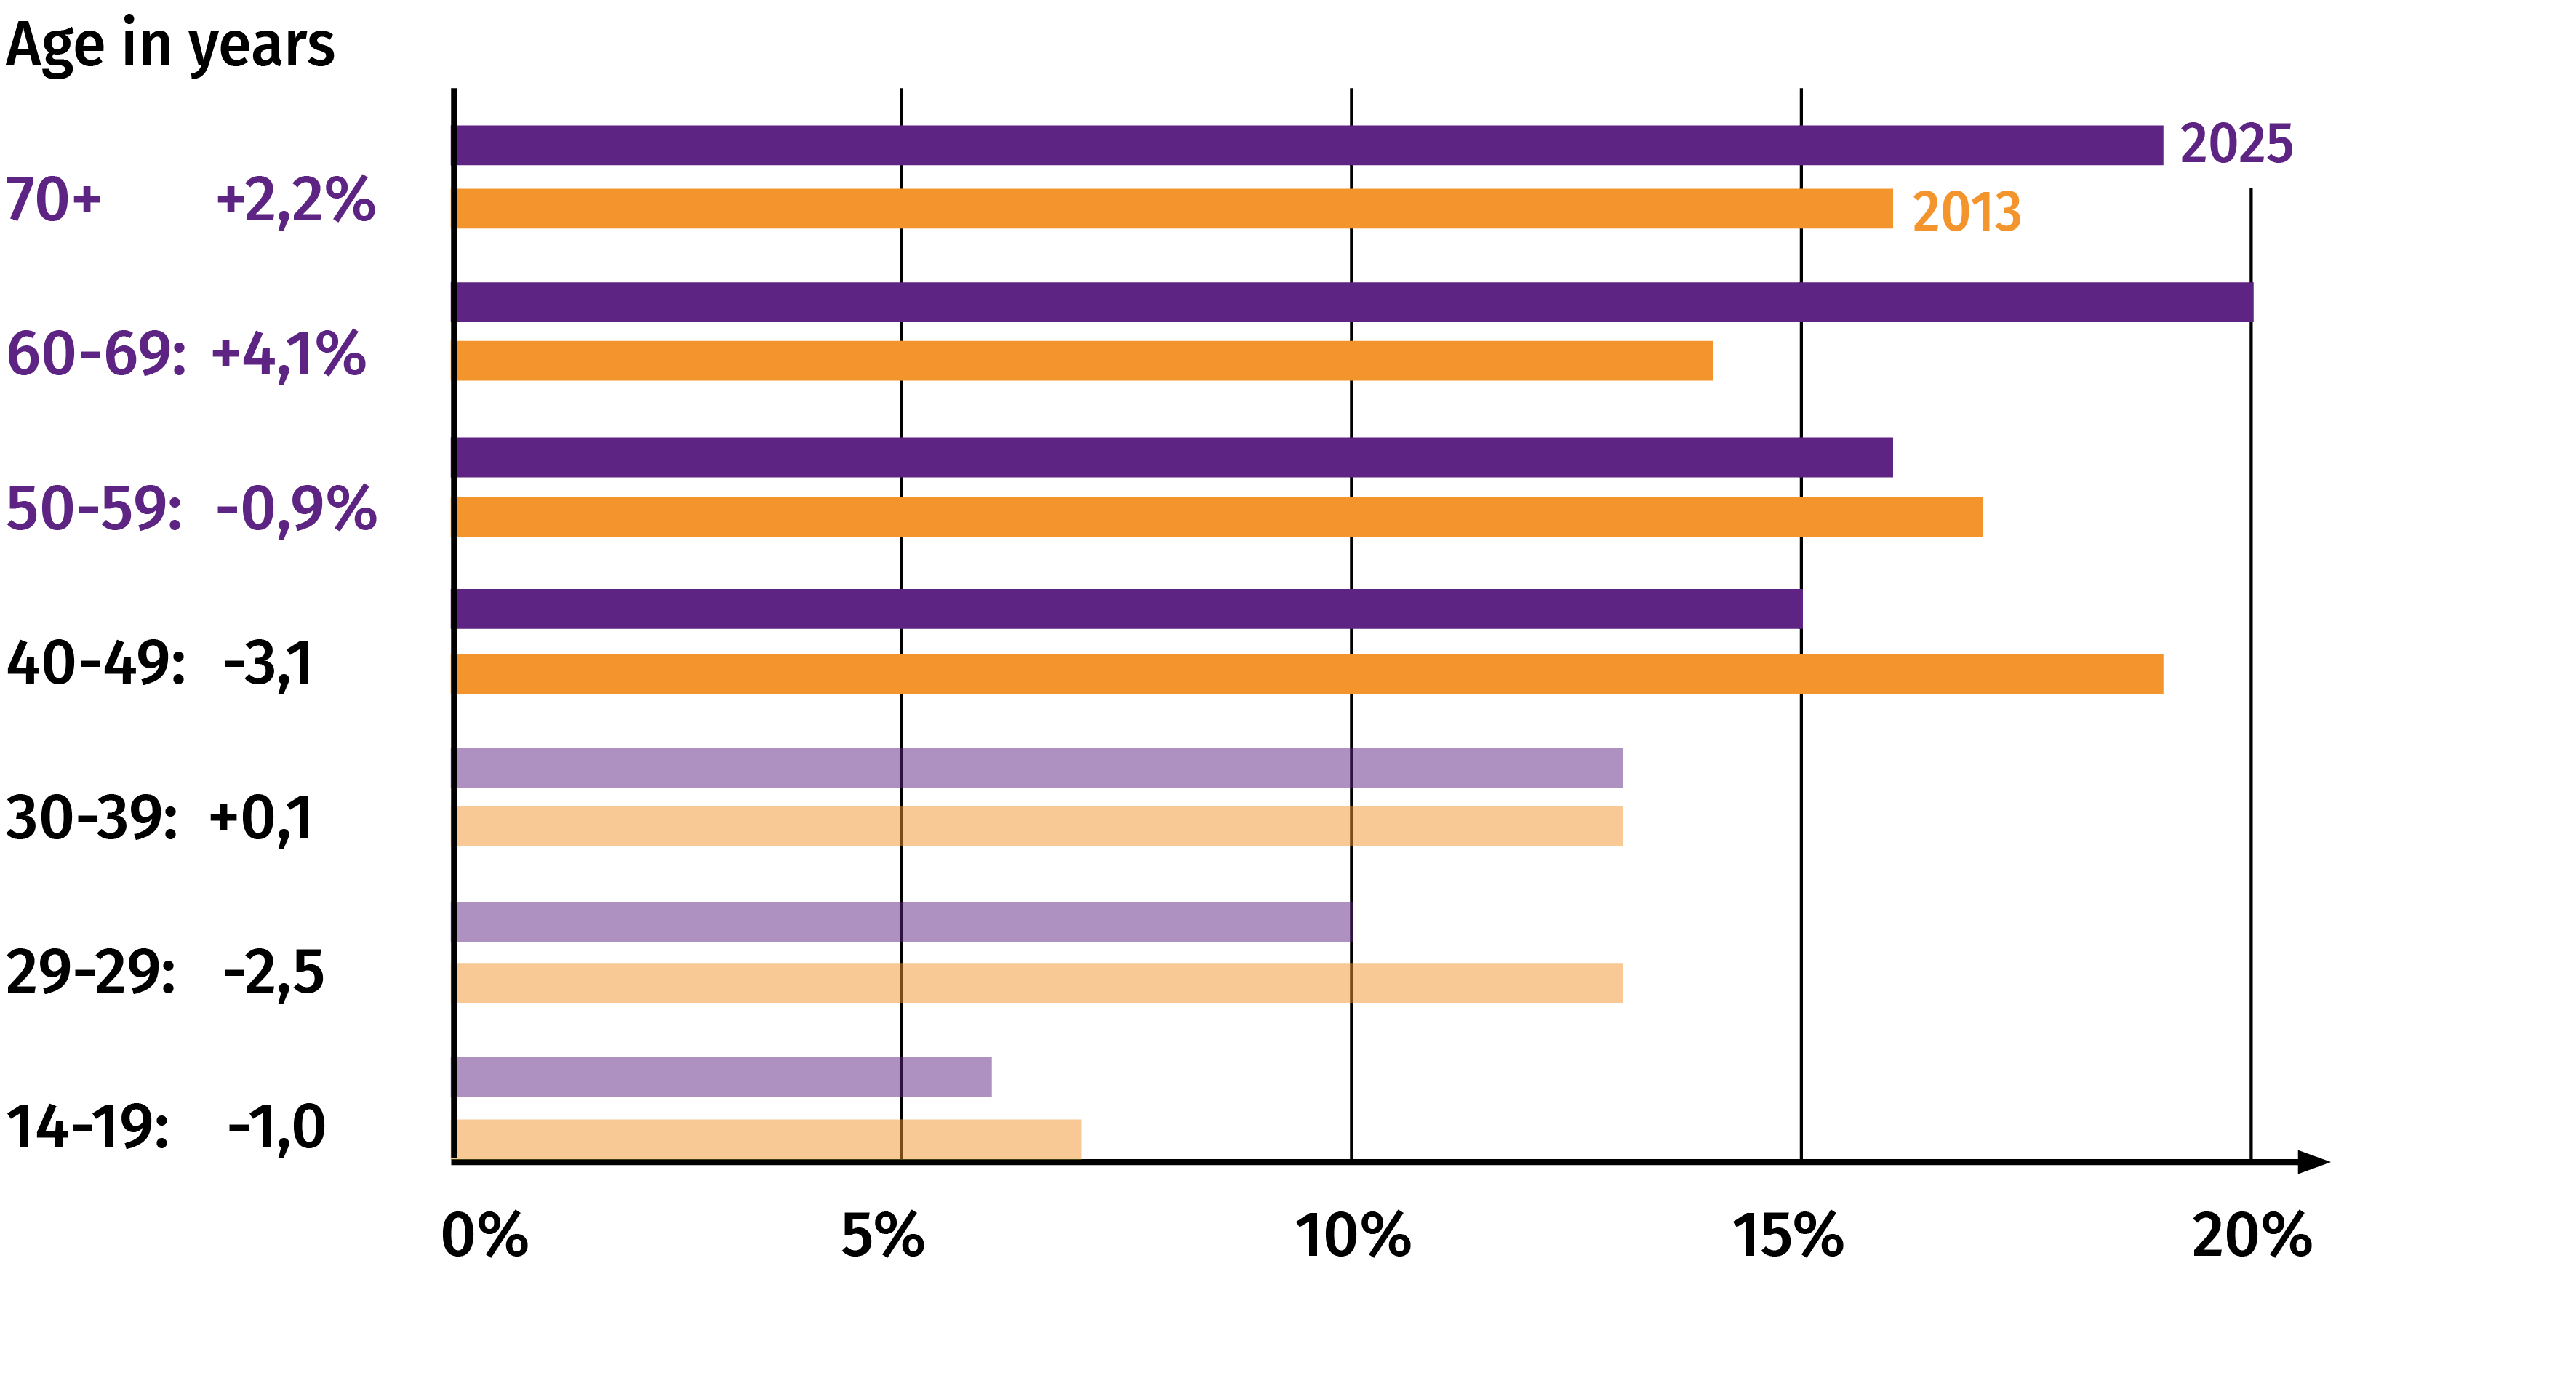 Diagram Age Distribution in 2013 and 2025